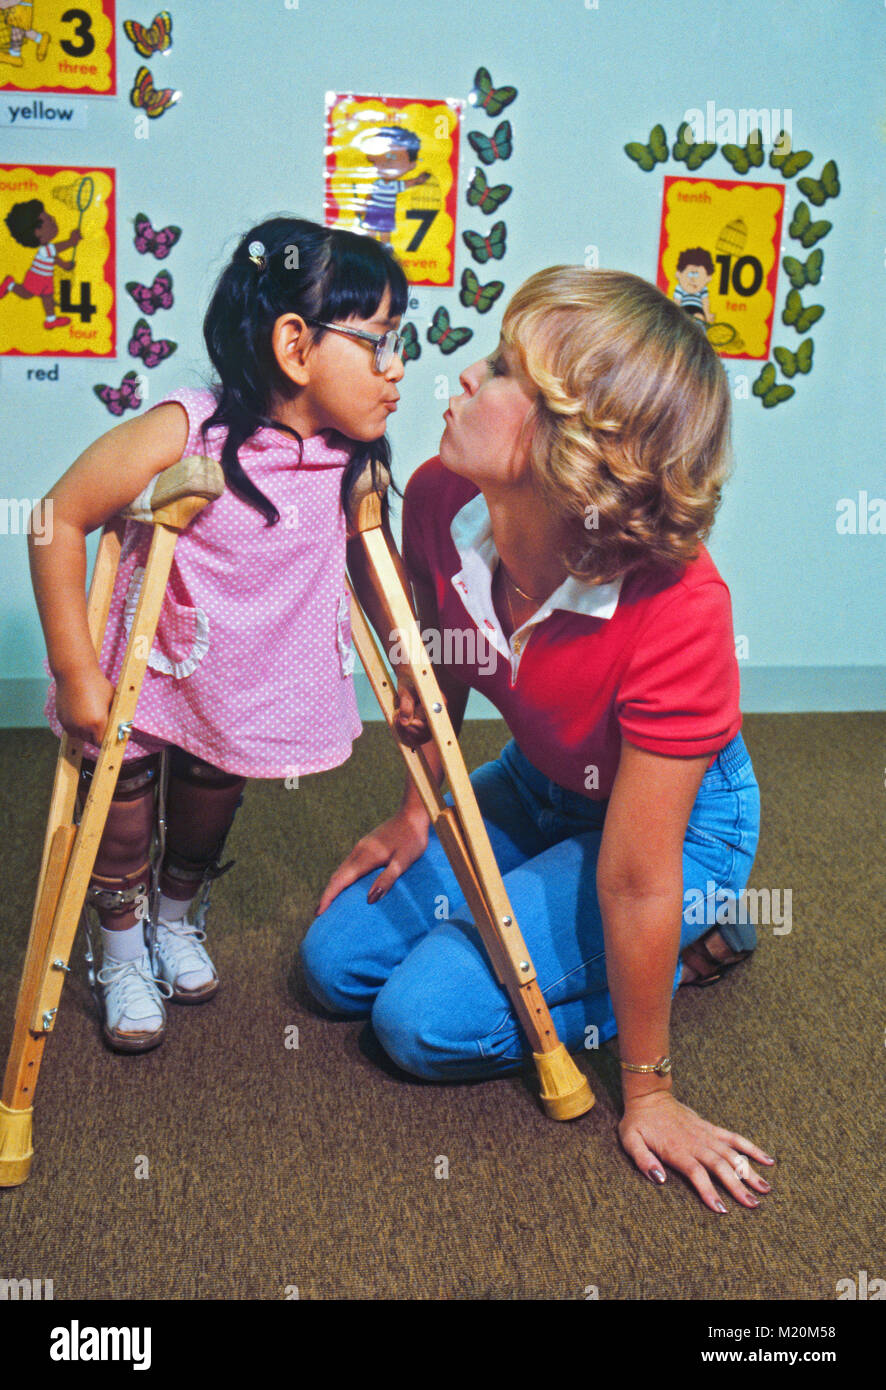 A seven year old crippled Hispanic child being cared for by a playful care-giver/nurse at a children's hospital - Stock Image